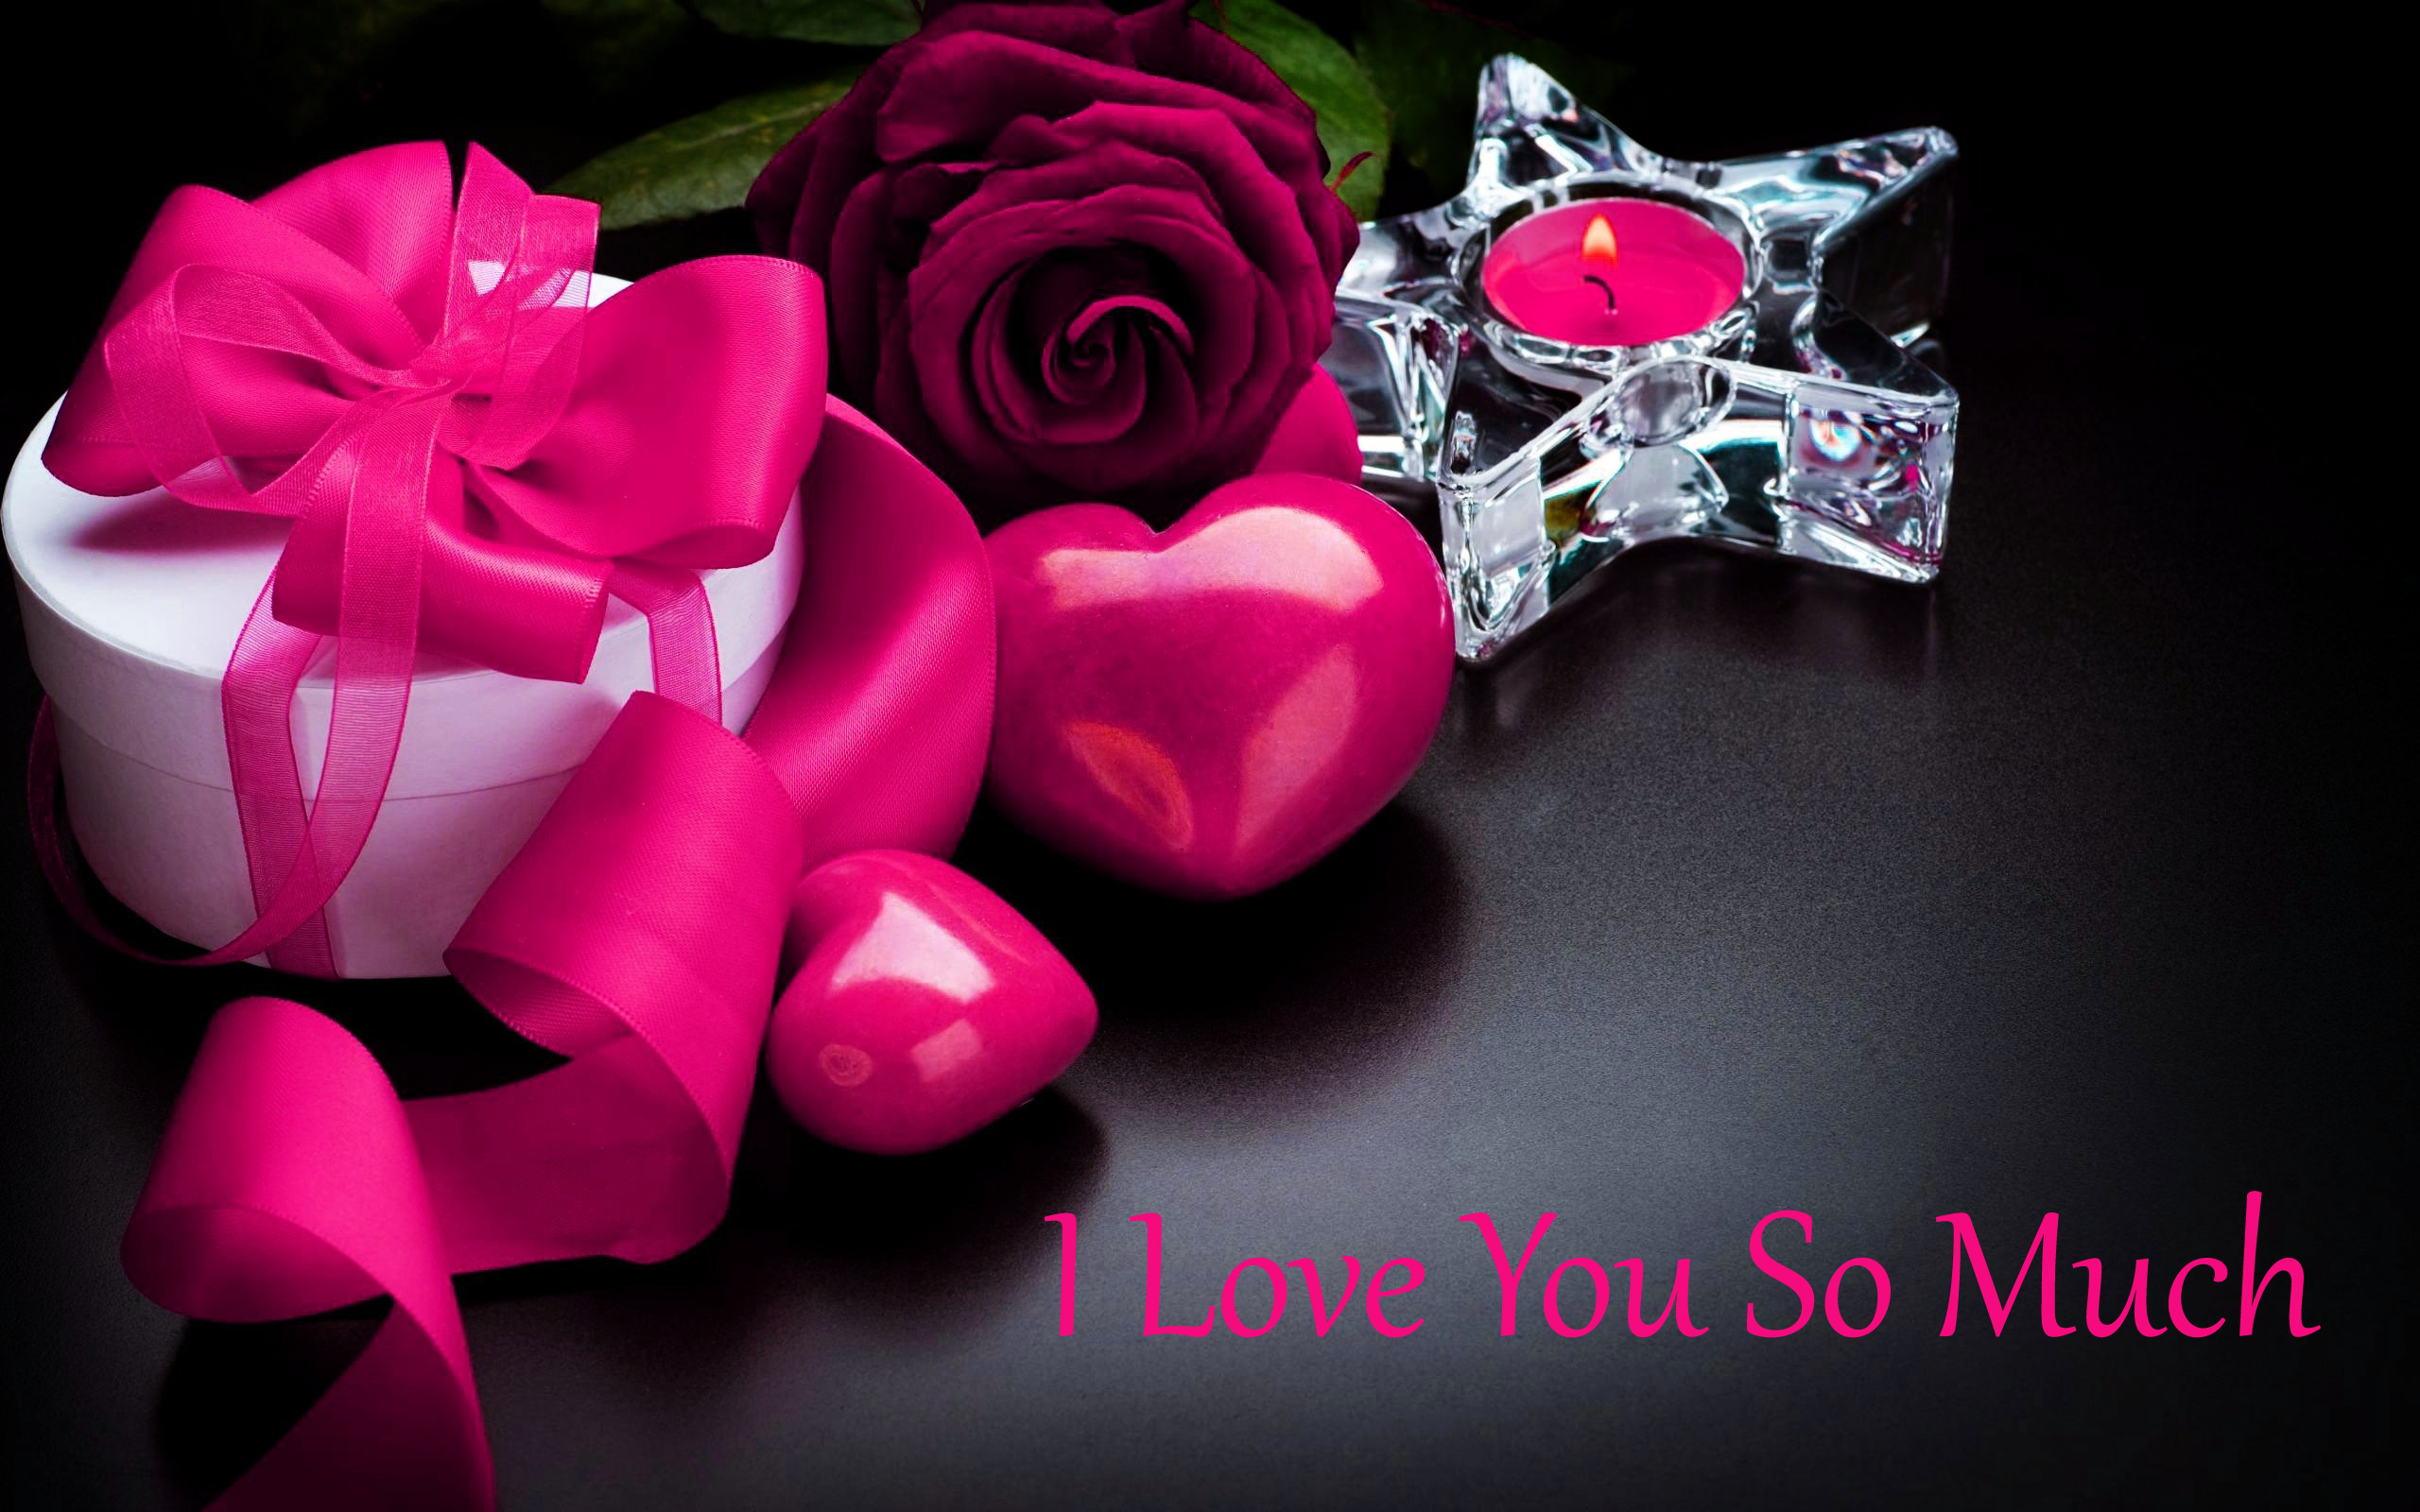 Free Download I Love You Wallpapers Download 2560x1600 For Your